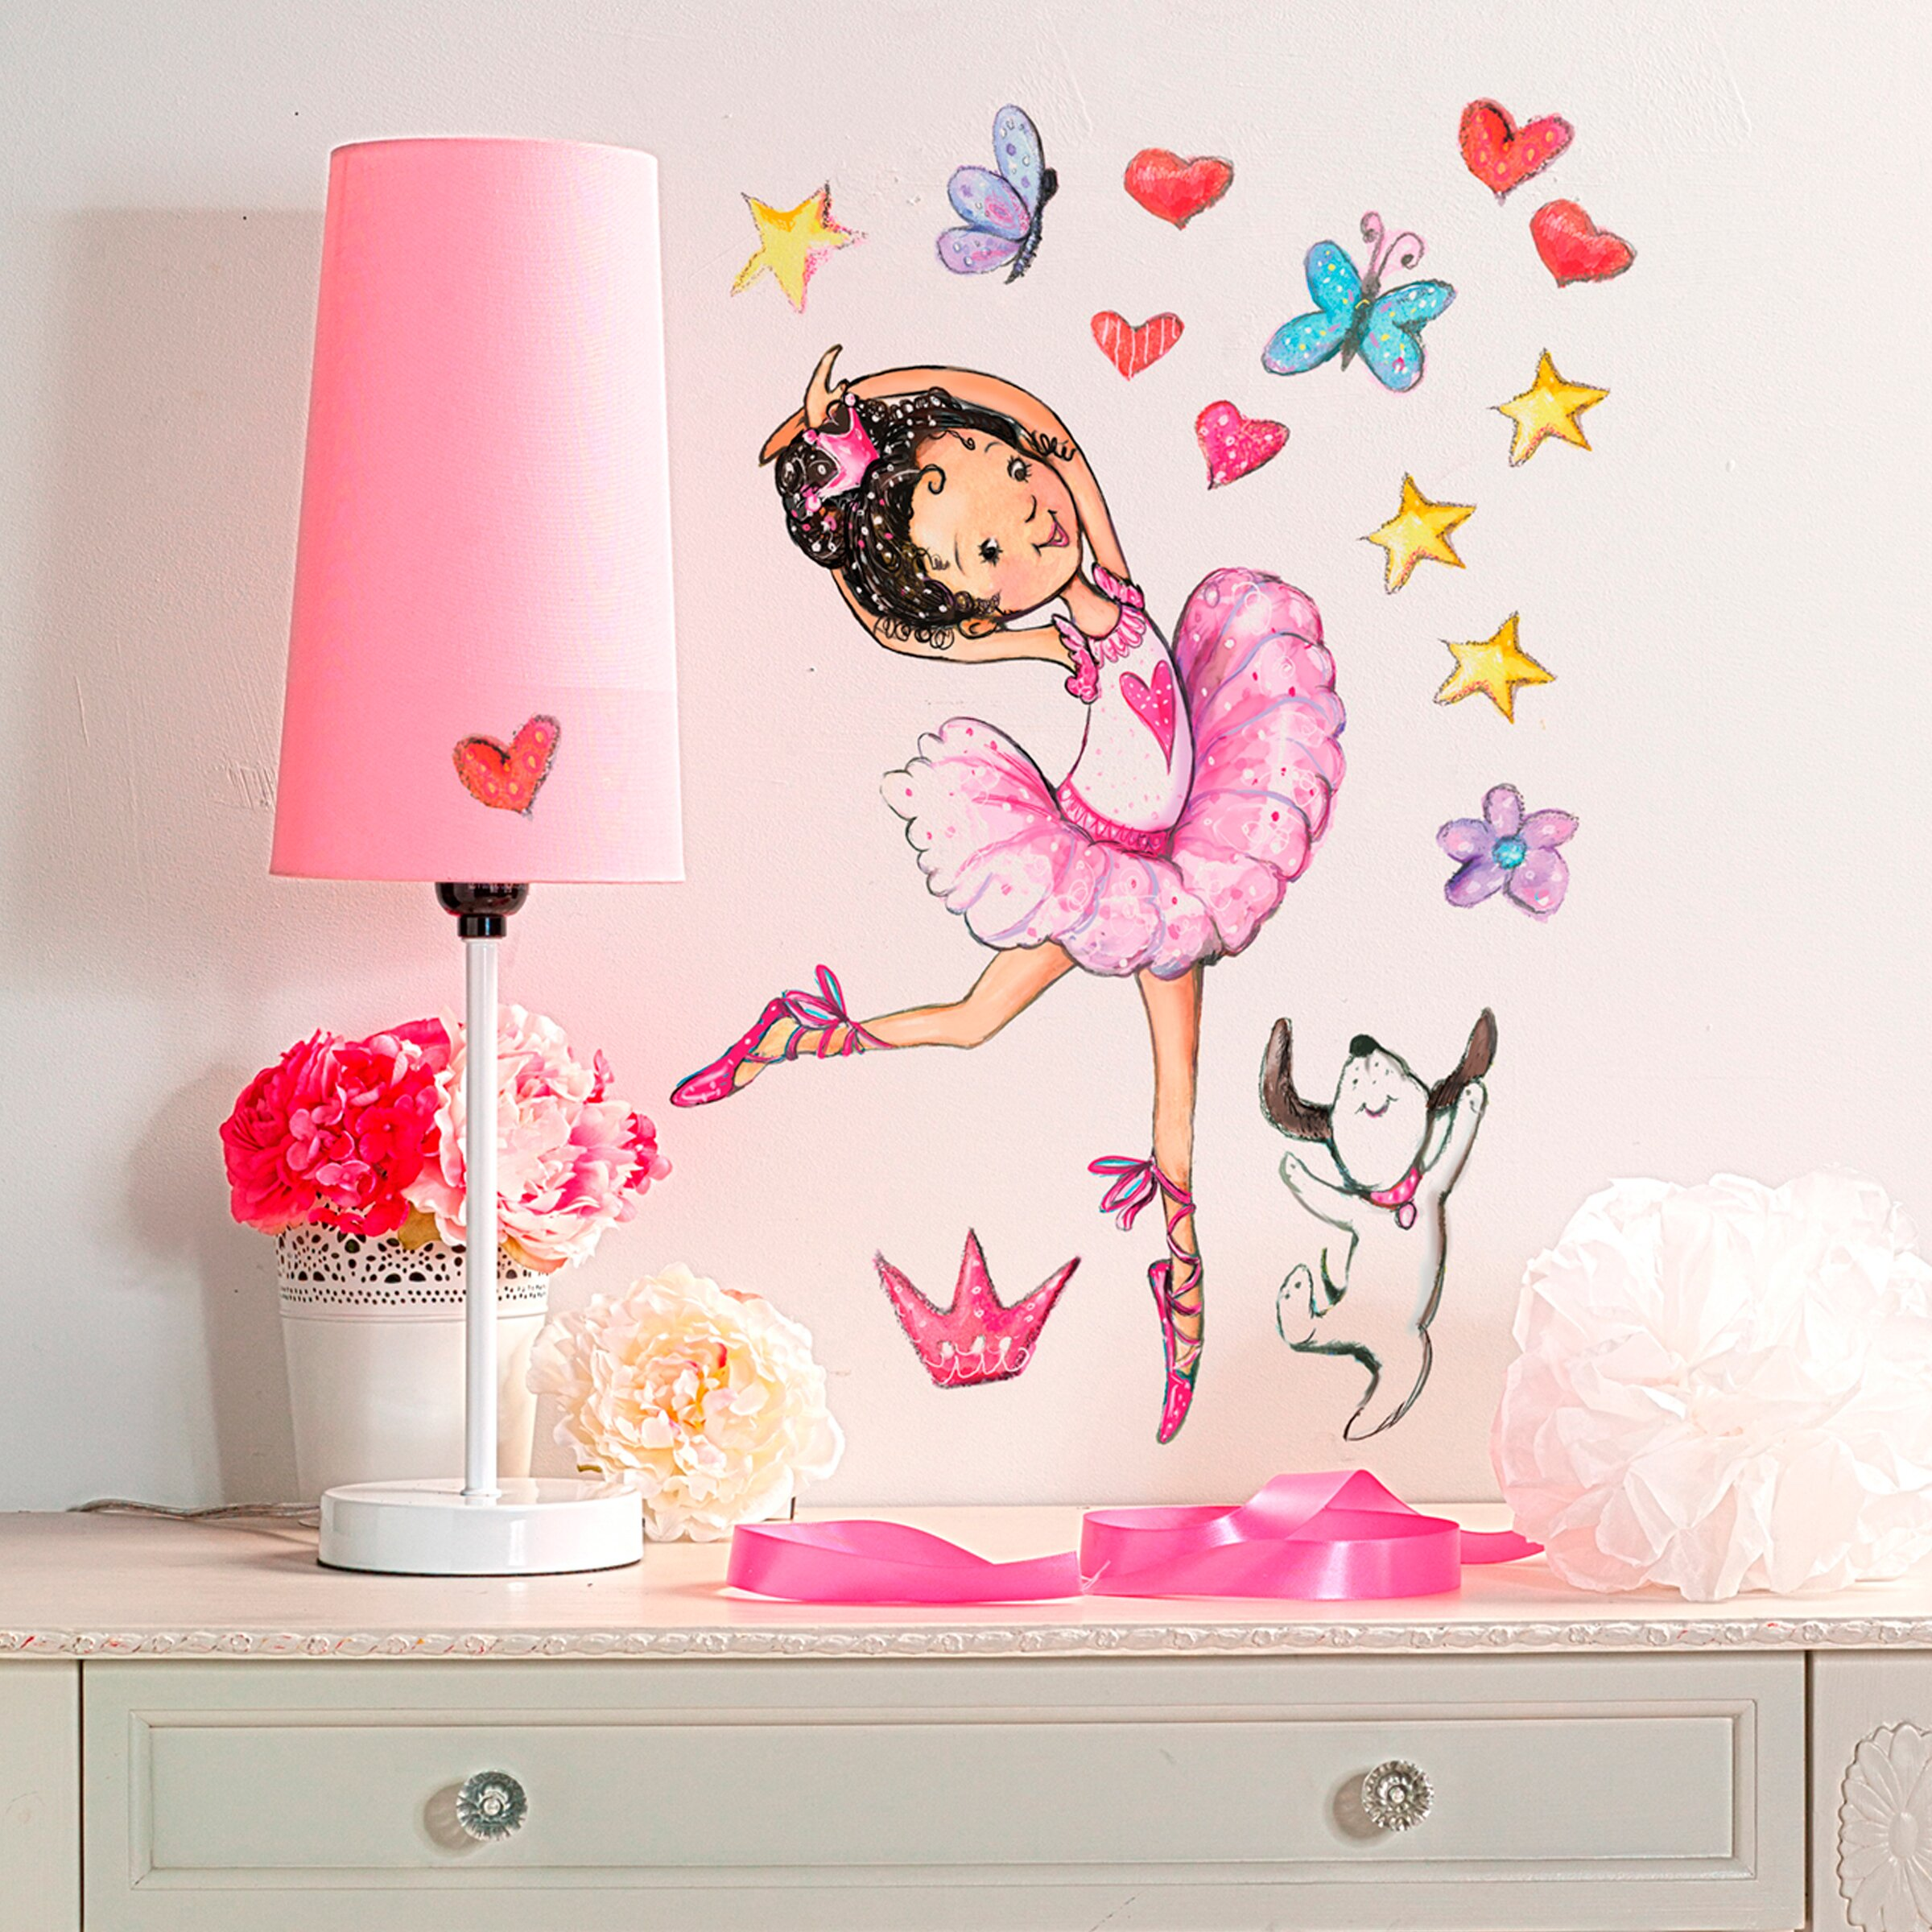 Wall decals next day delivery color the walls of your house wall decals next day delivery wallies ballerina wall decal wayfair amipublicfo Gallery